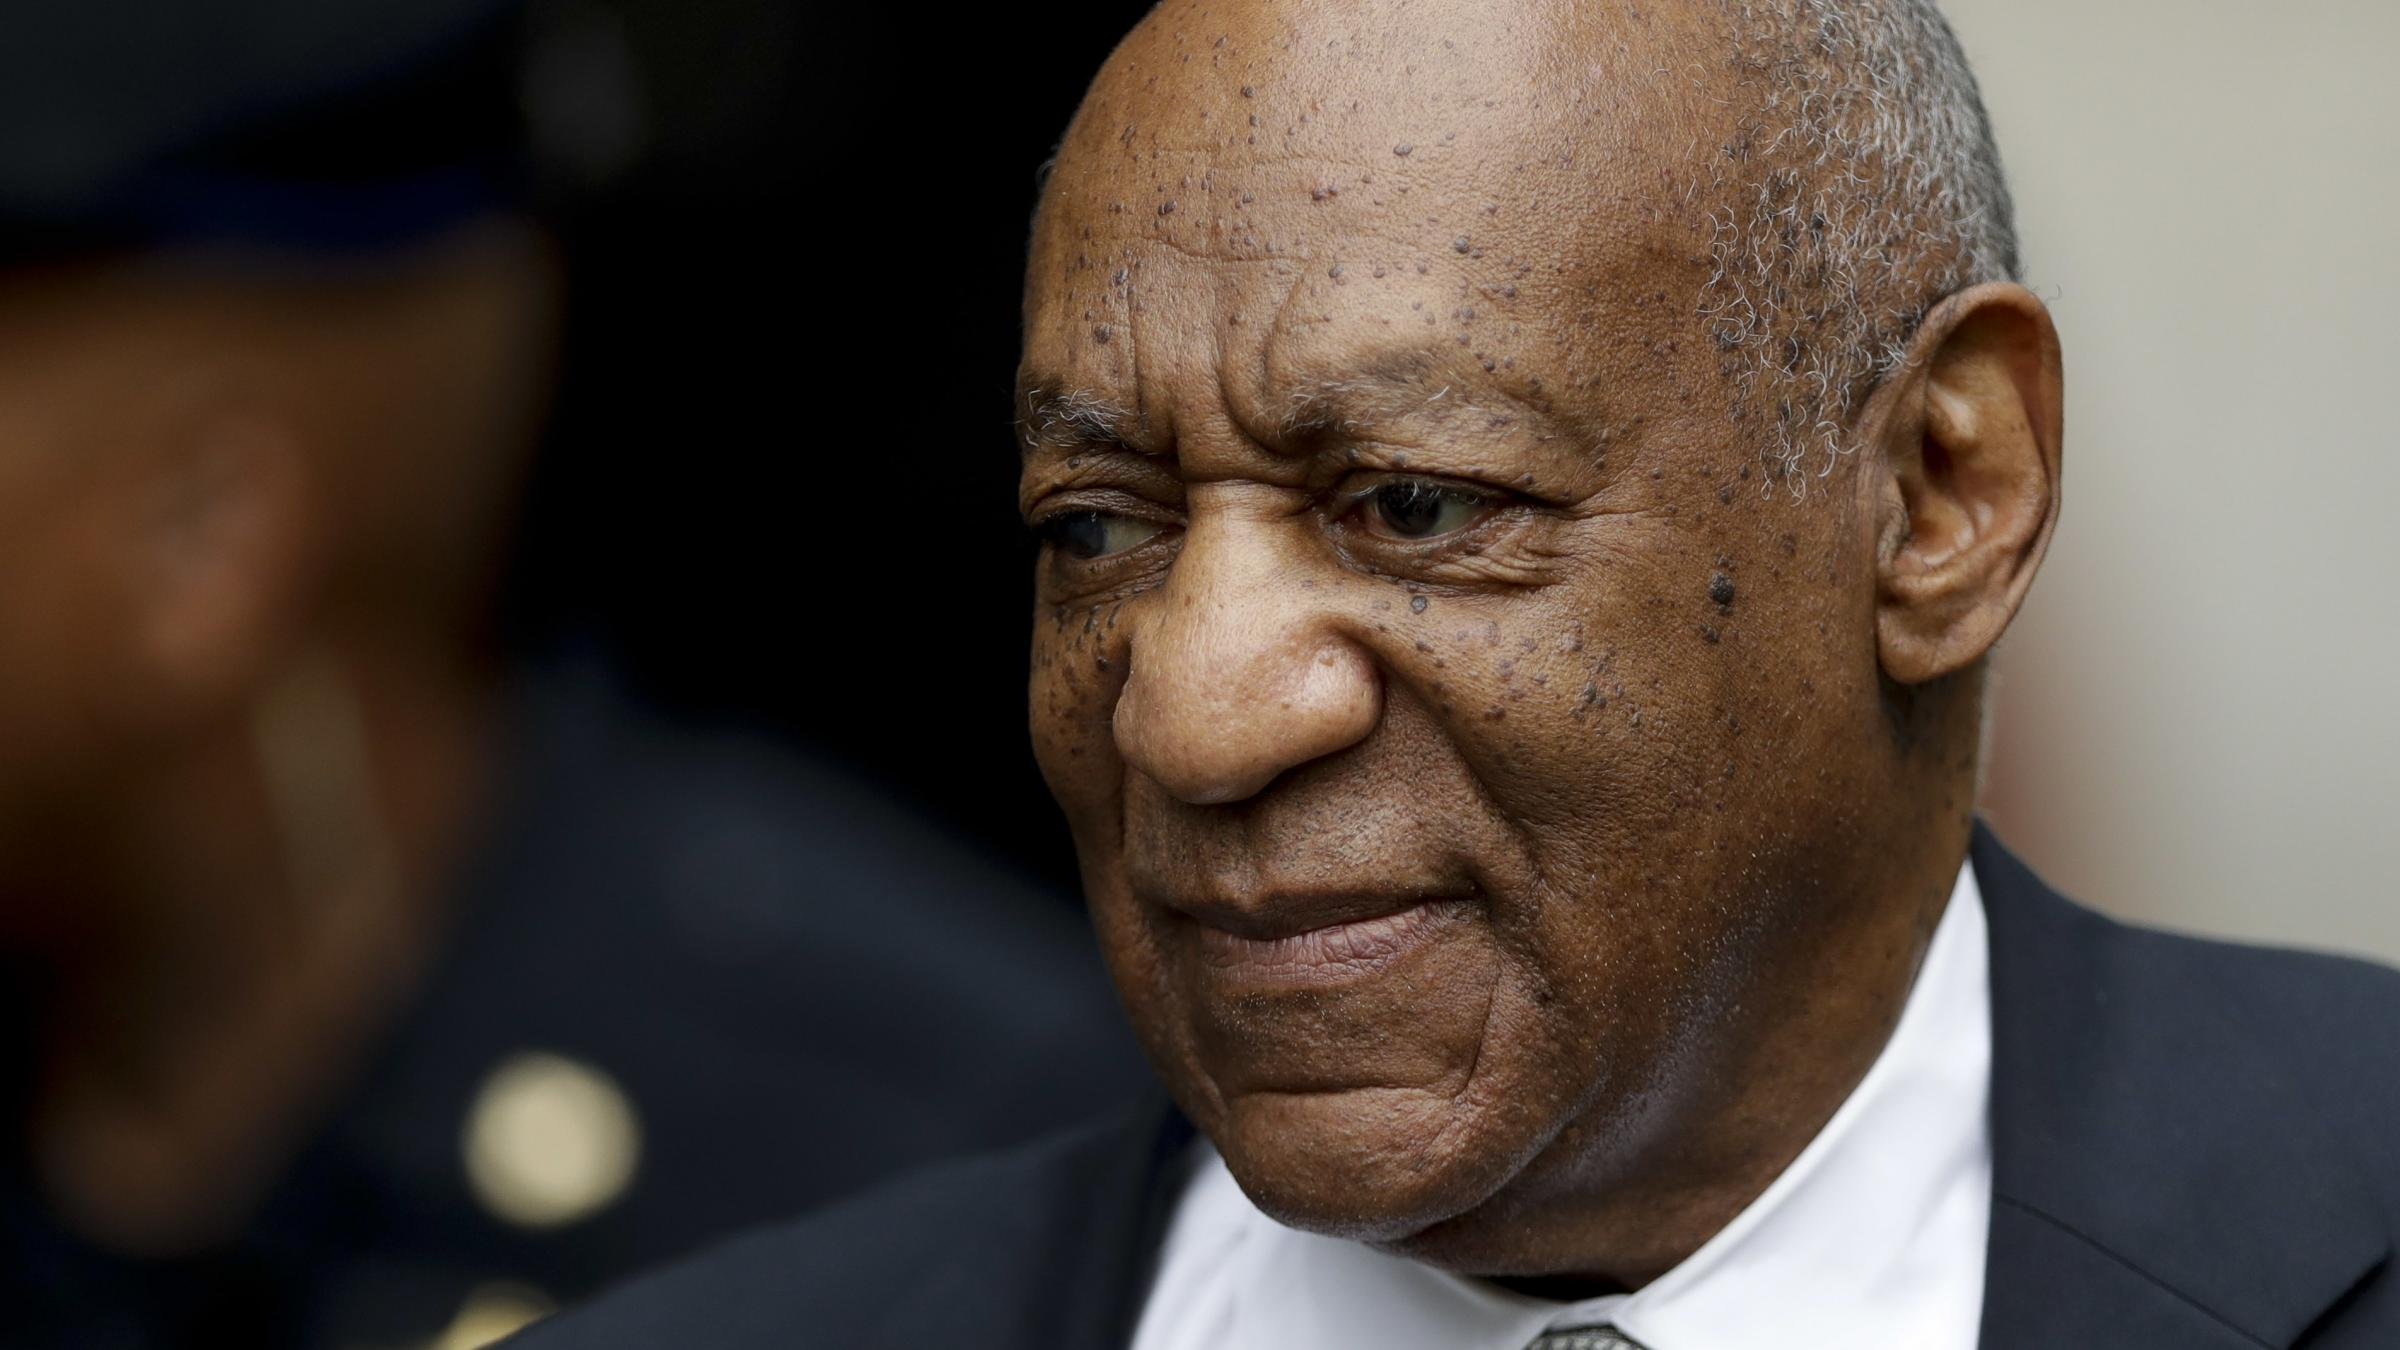 Bill Cosby's Sexual Assault Trial Just Ended In A Mistrial